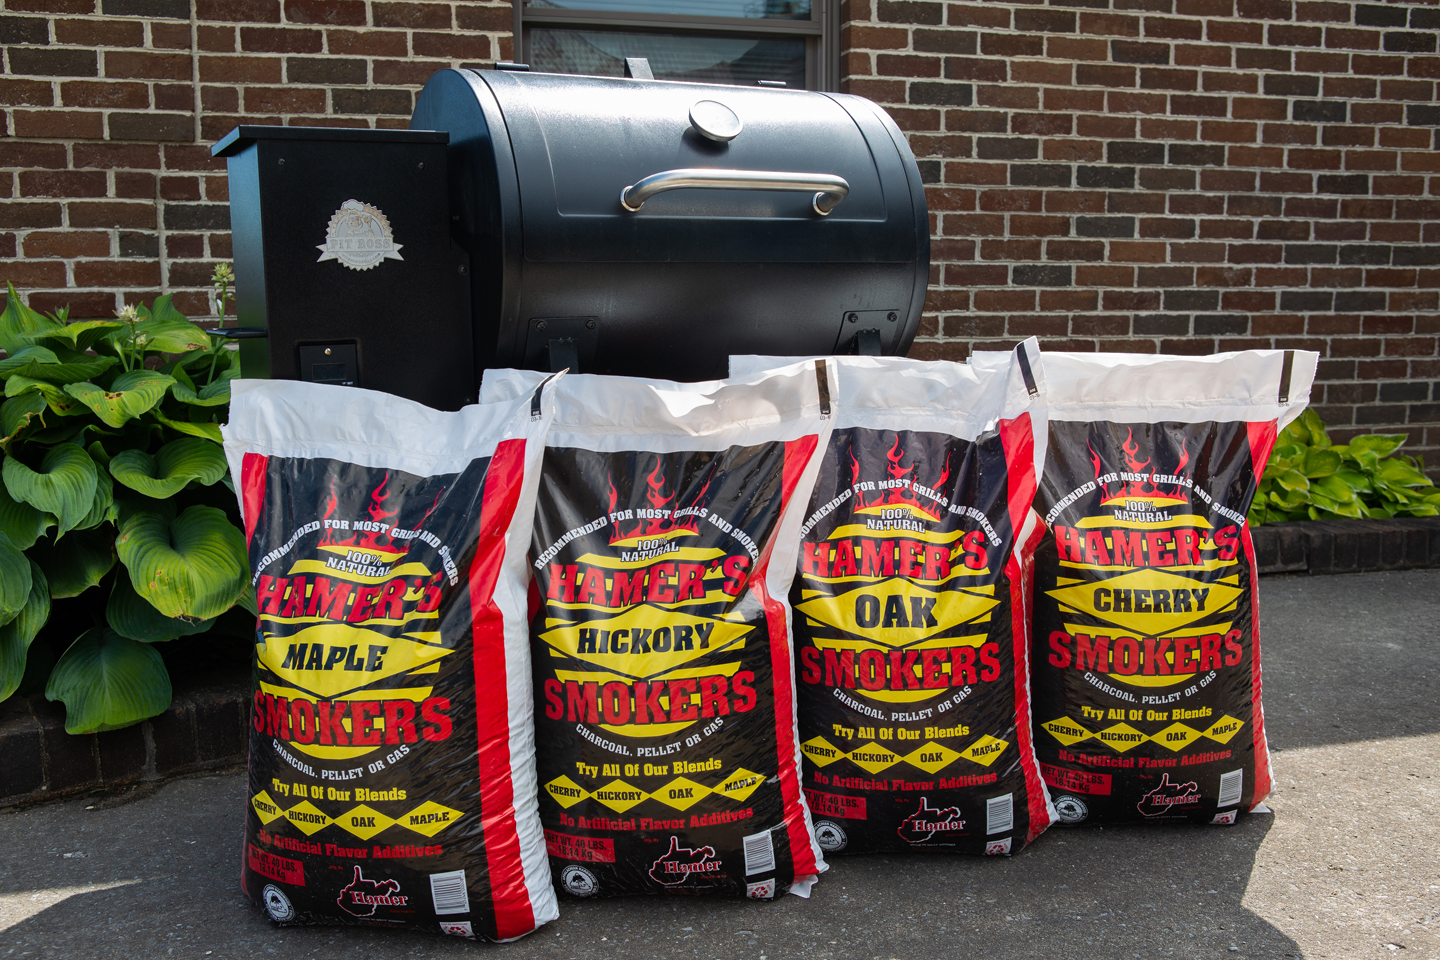 Bags of Hamer's Oak Smokers